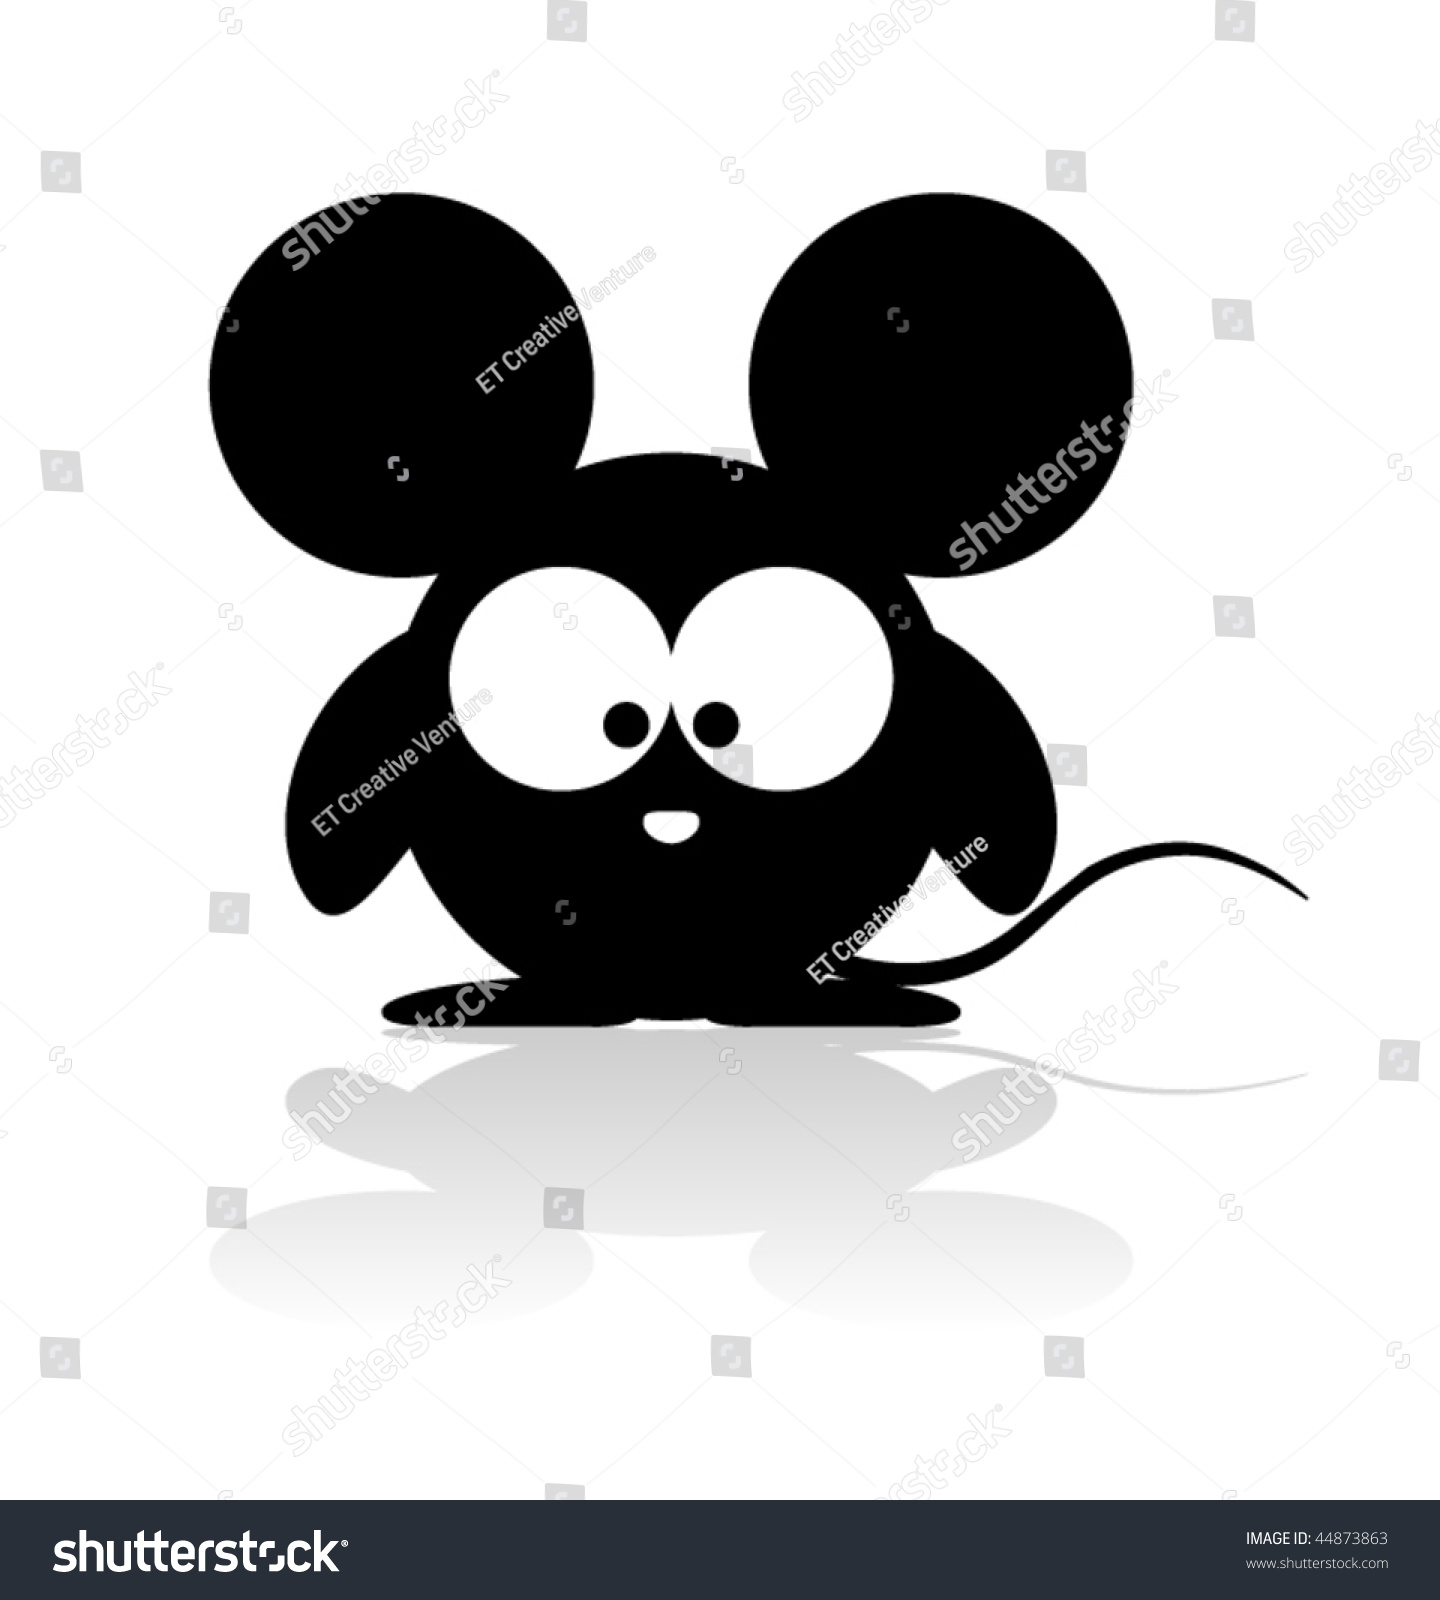 Cute Mouse Vector - 44873863 : Shutterstock